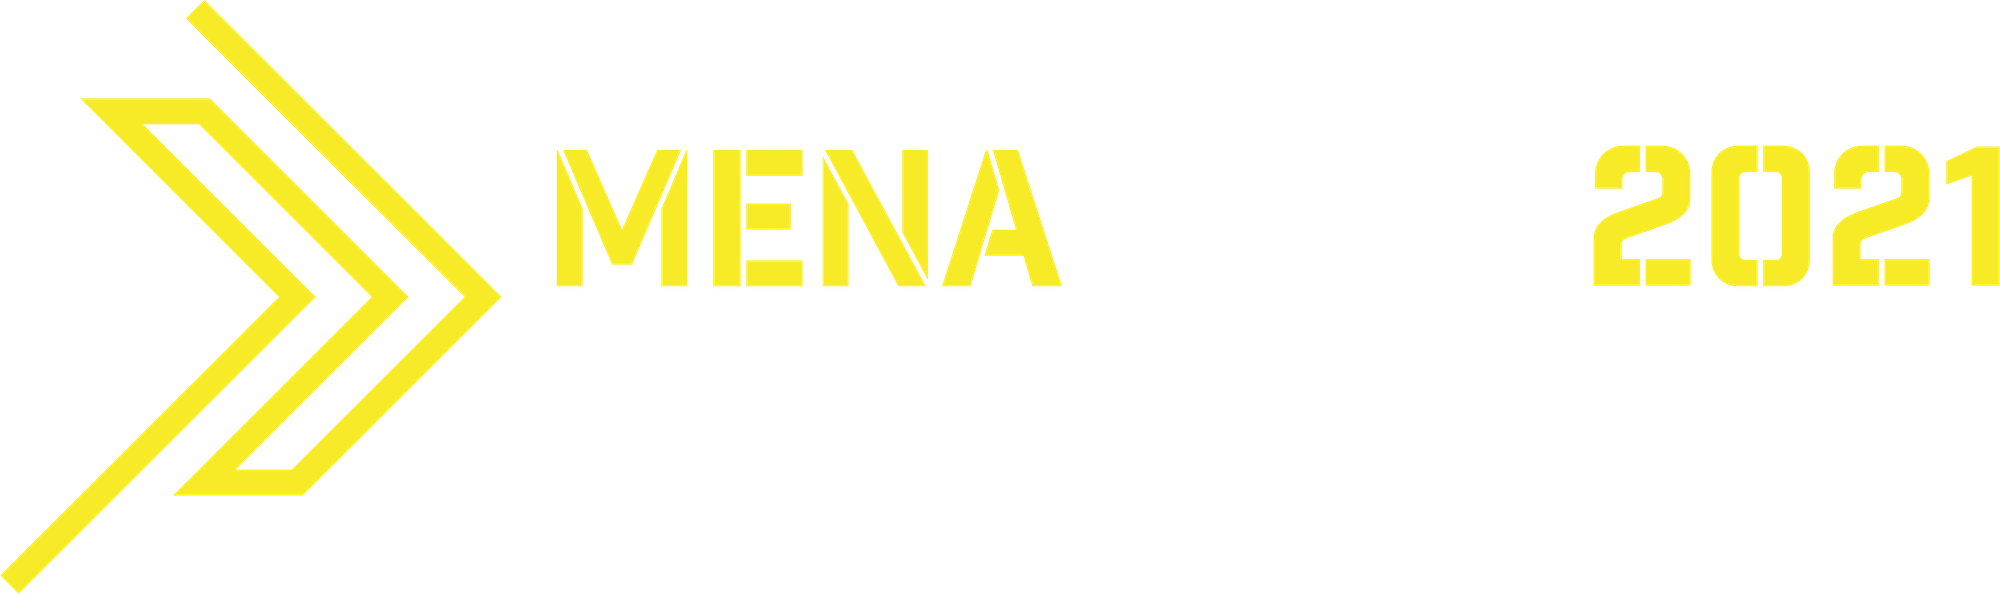 MENA Search Awards logo